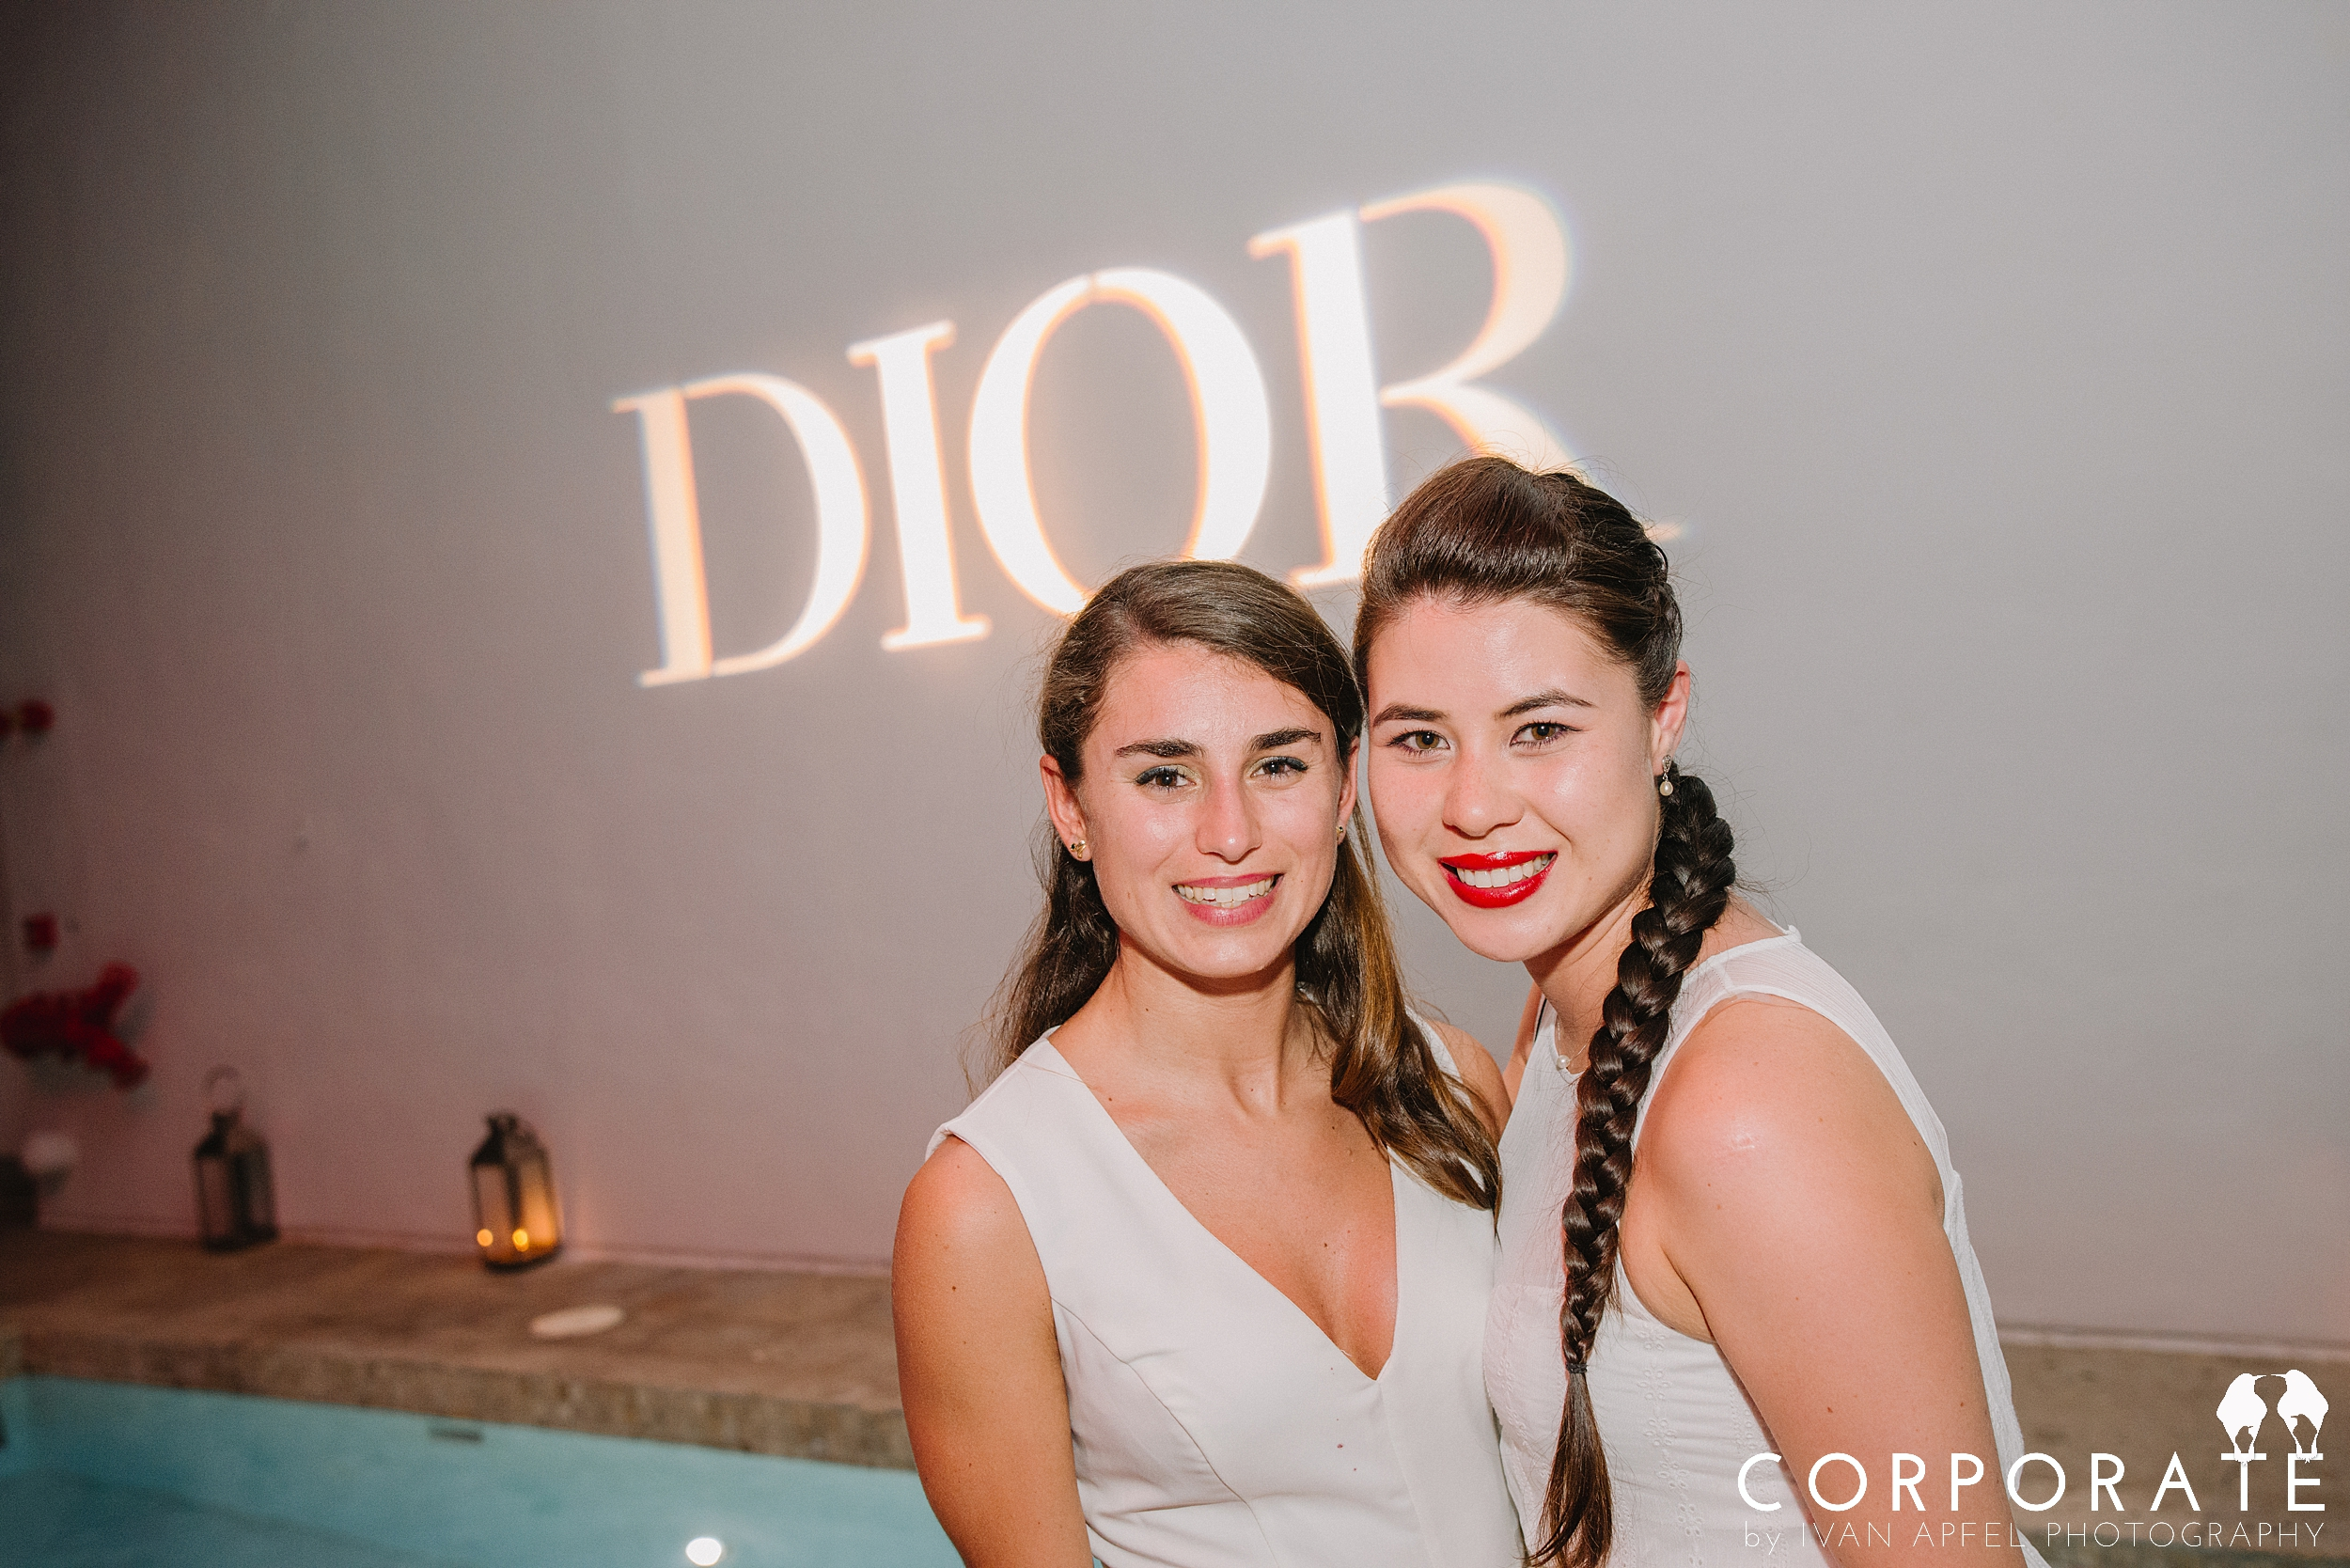 Miami Corporate Event Photographer Dior Release Party_0030.jpg